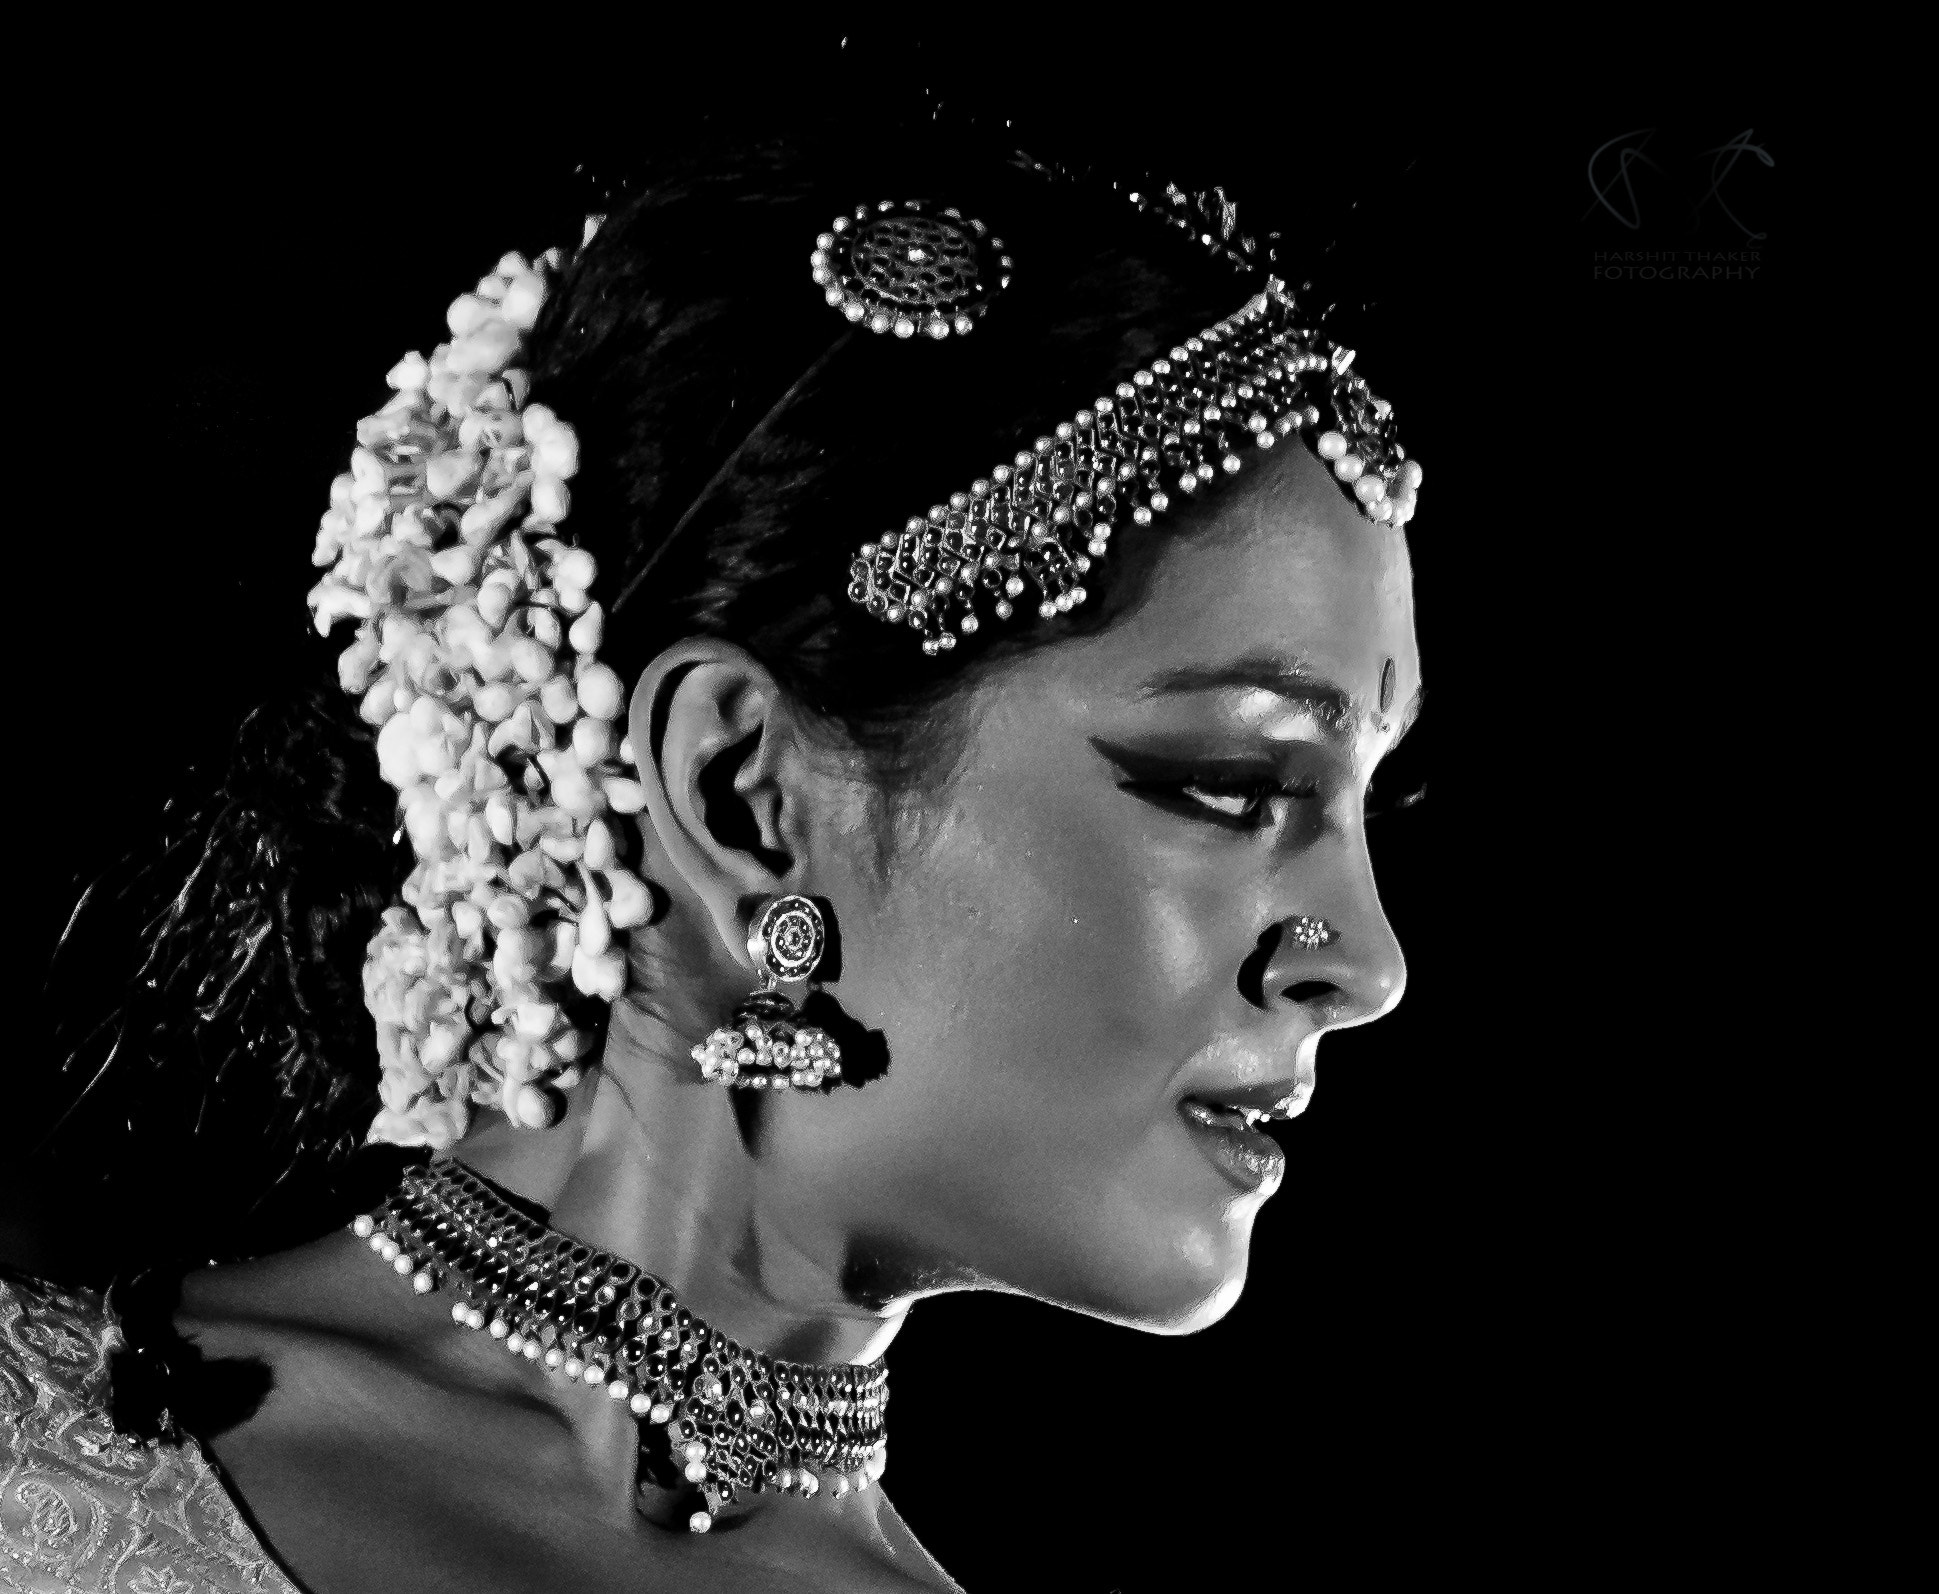 Photograph The Dancer by Harshit  Thaker on 500px